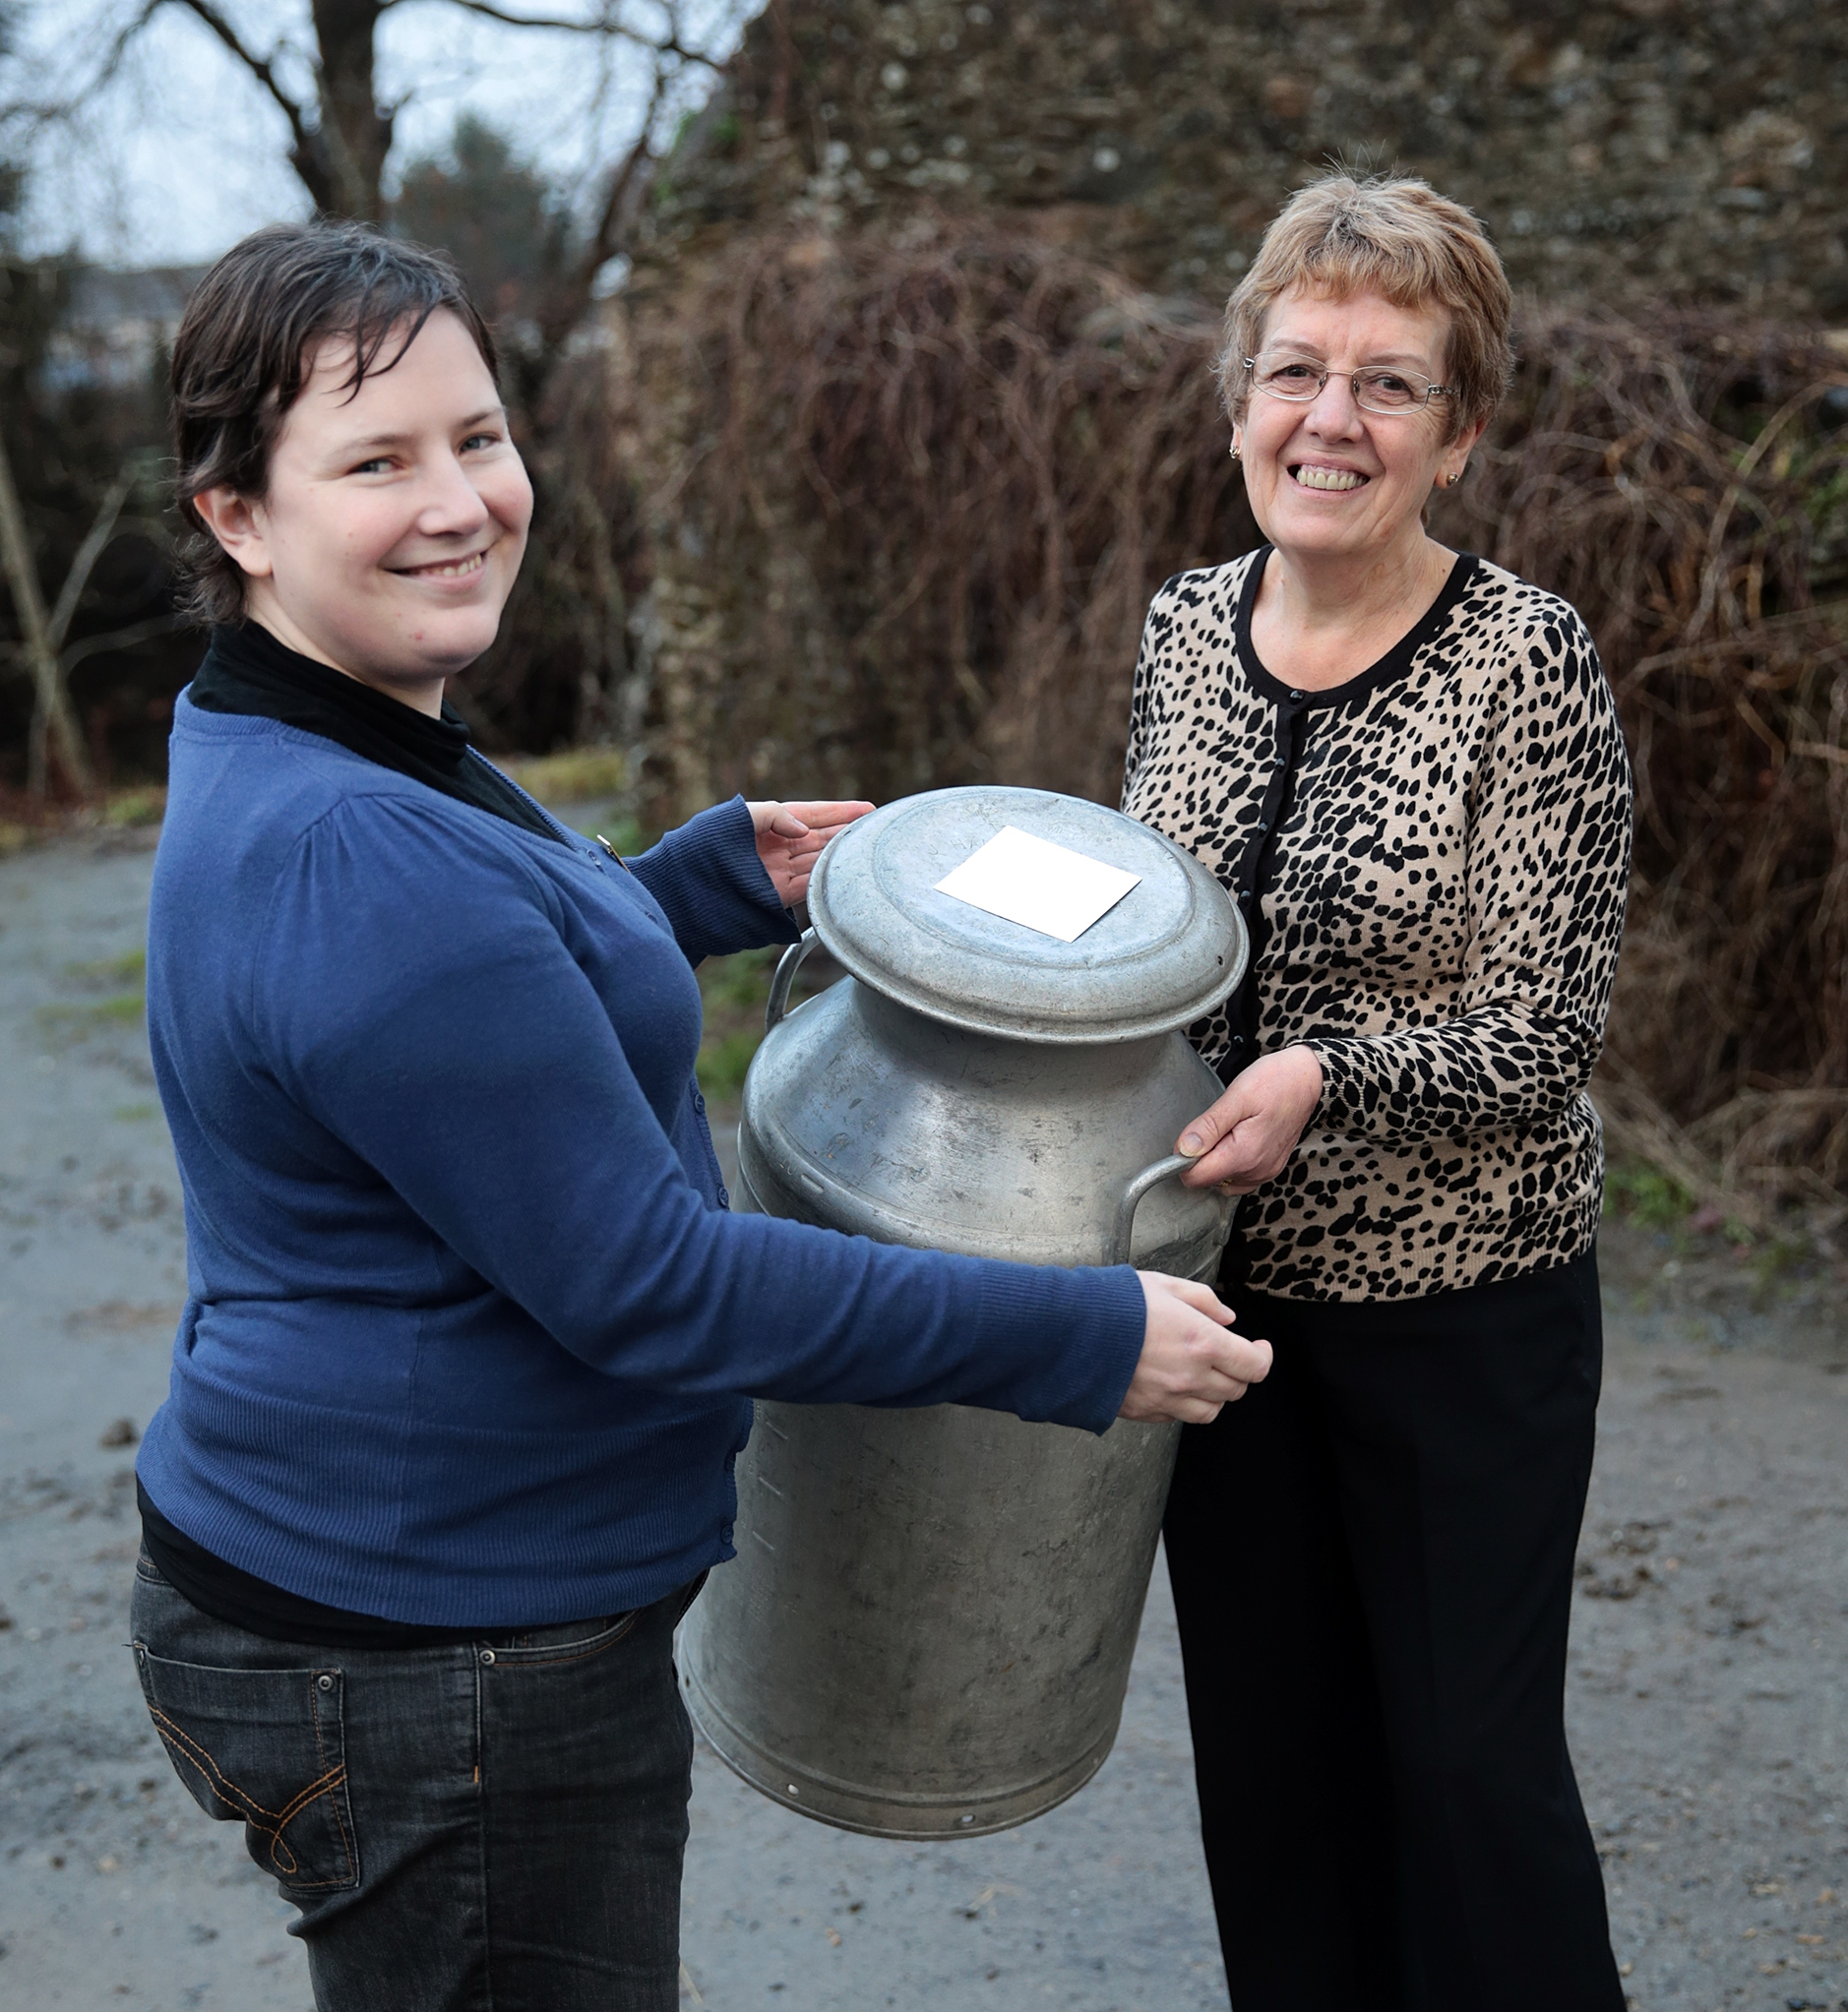 FUW Carmarthenshire county chairman Catherine Nakielny (left) presents Meinir Bartlett with her retirement milk churn present.